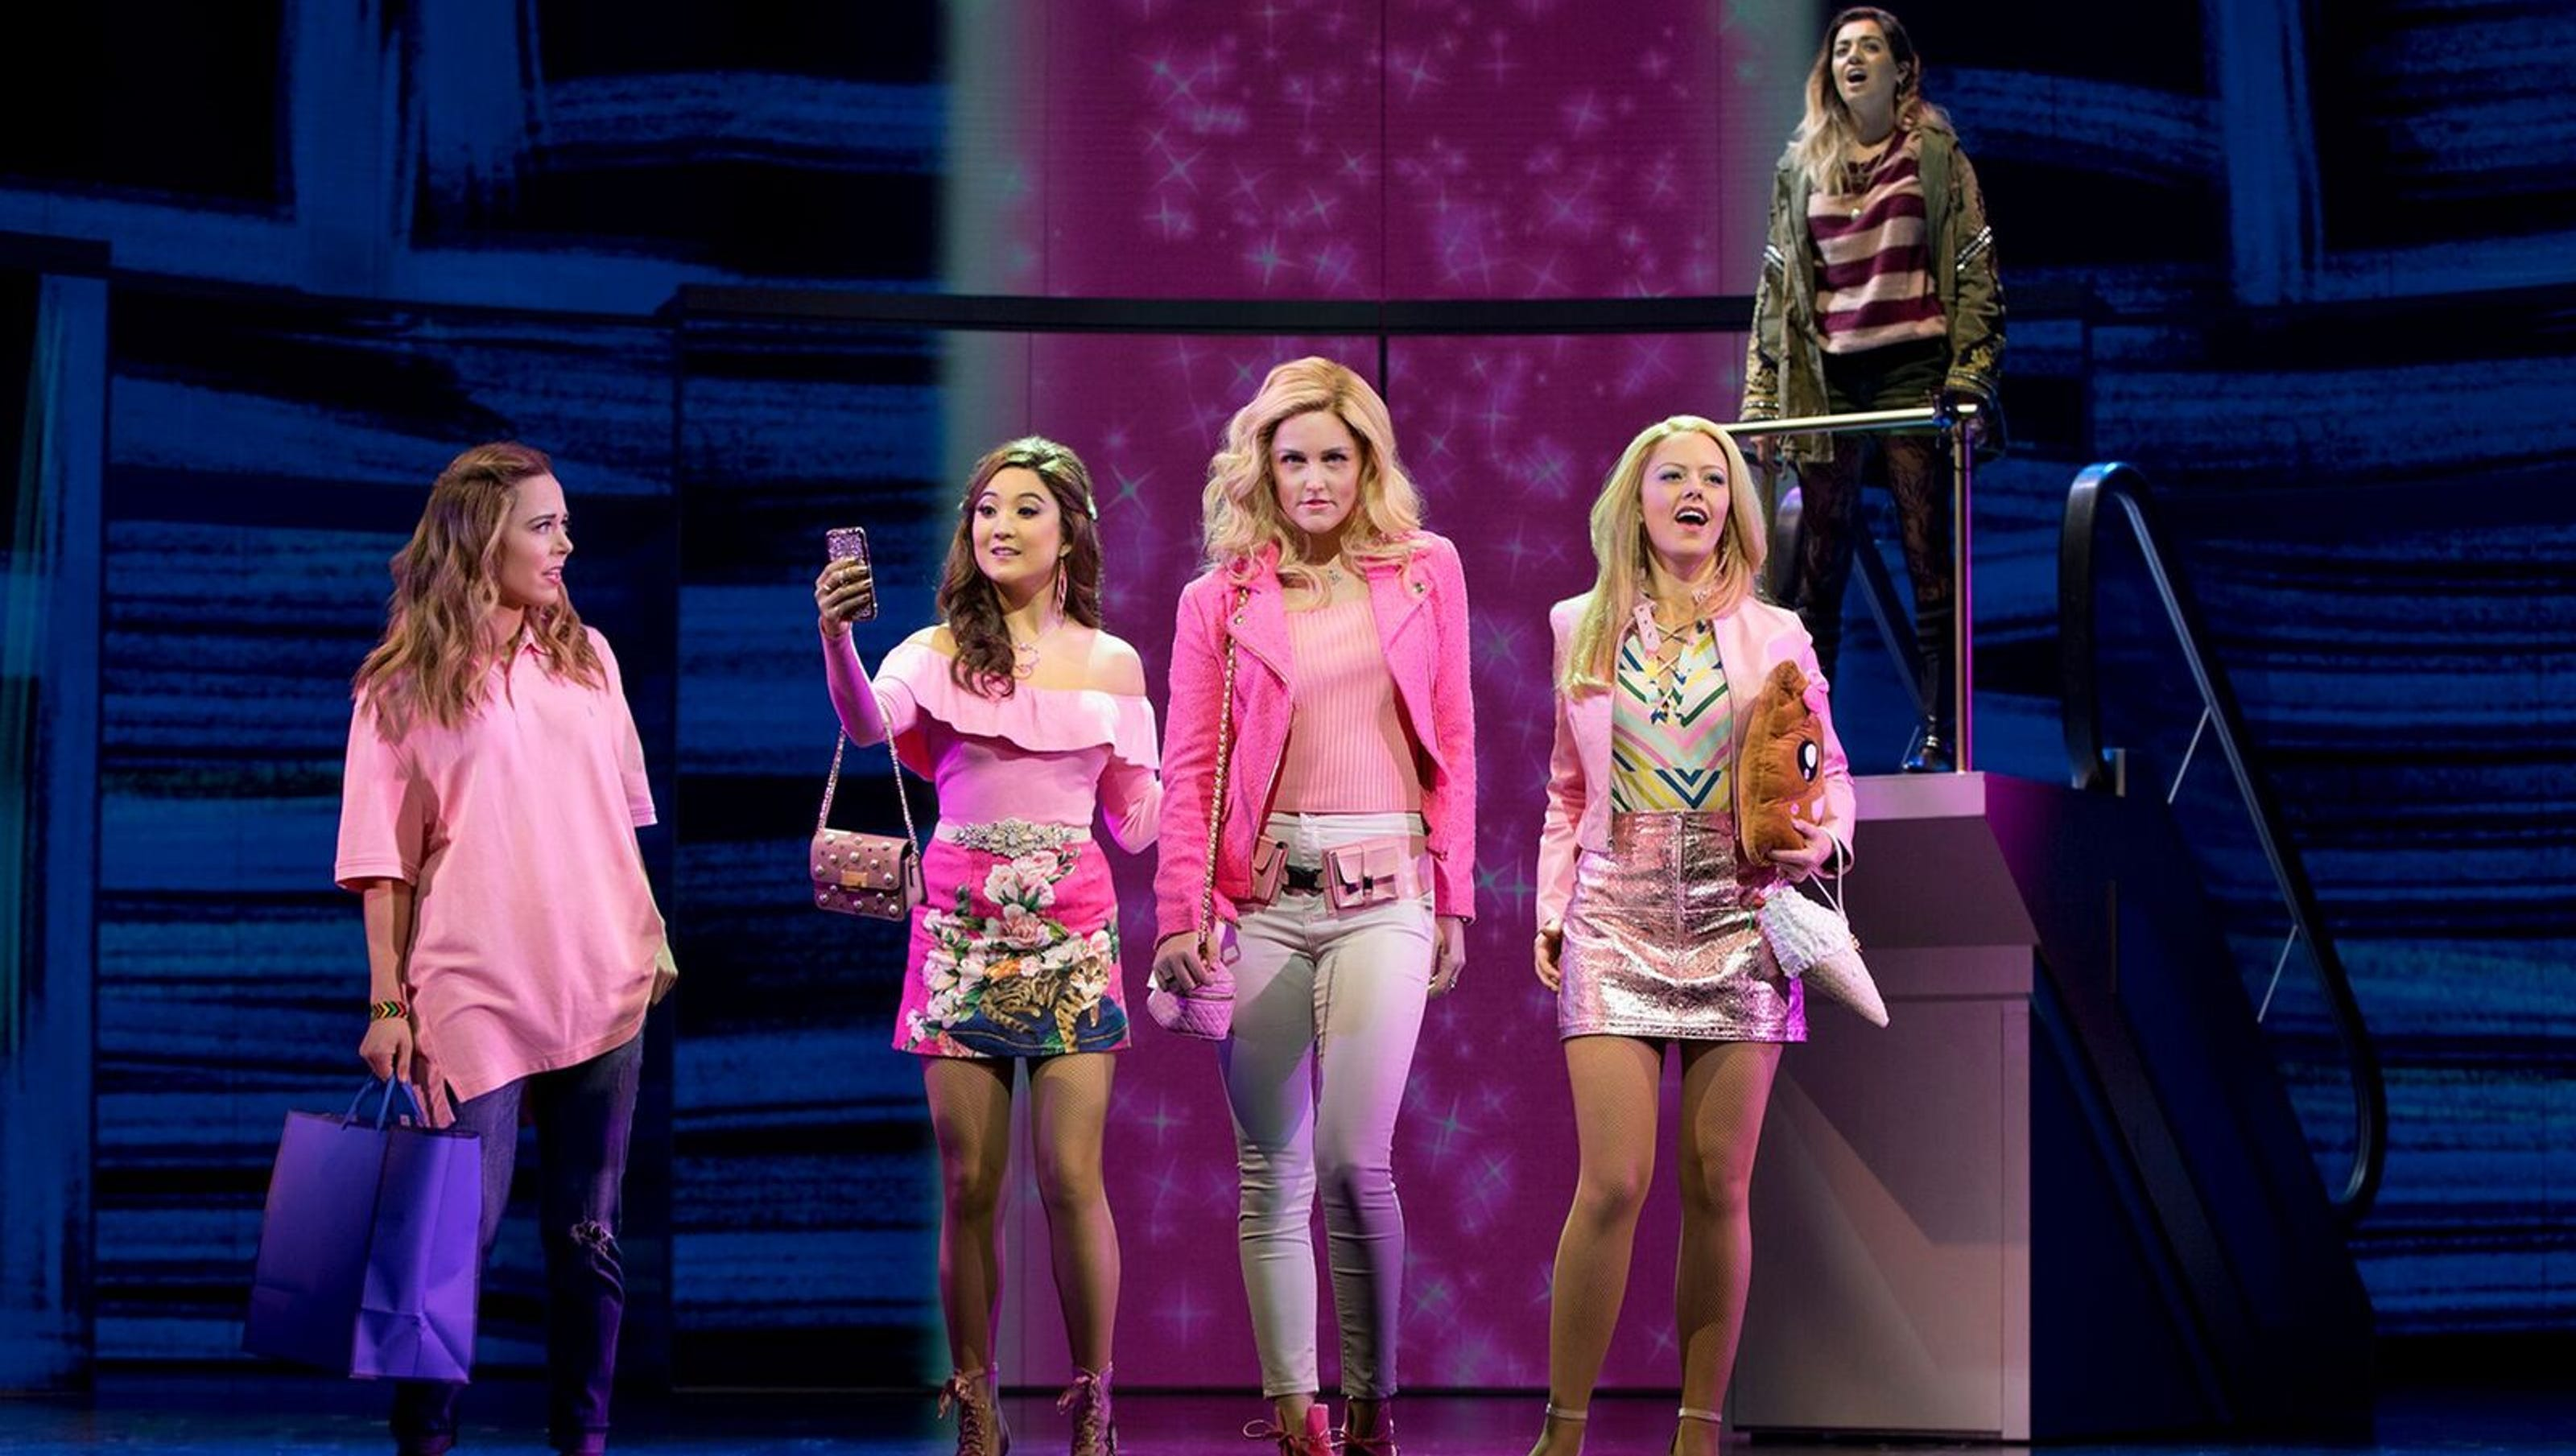 Mean Girls Musicals Cady Heron Explains How Me Too Impacted The Show